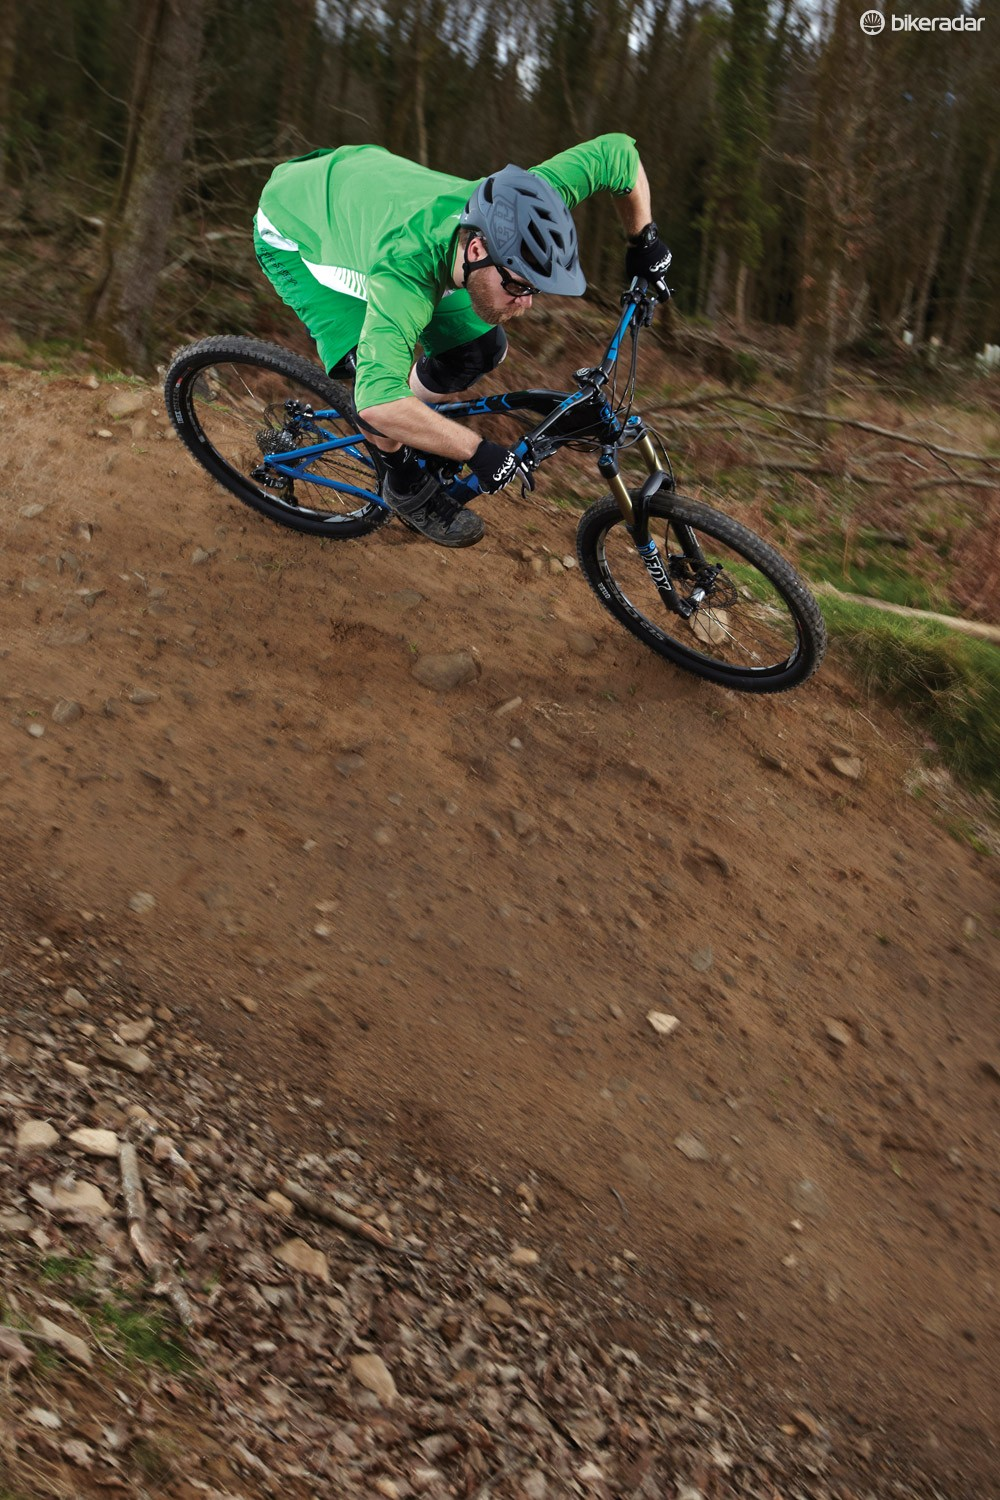 The big Onza tyres underline the already comically surefooted Dune with maximum grip to create a total ripper of a bike